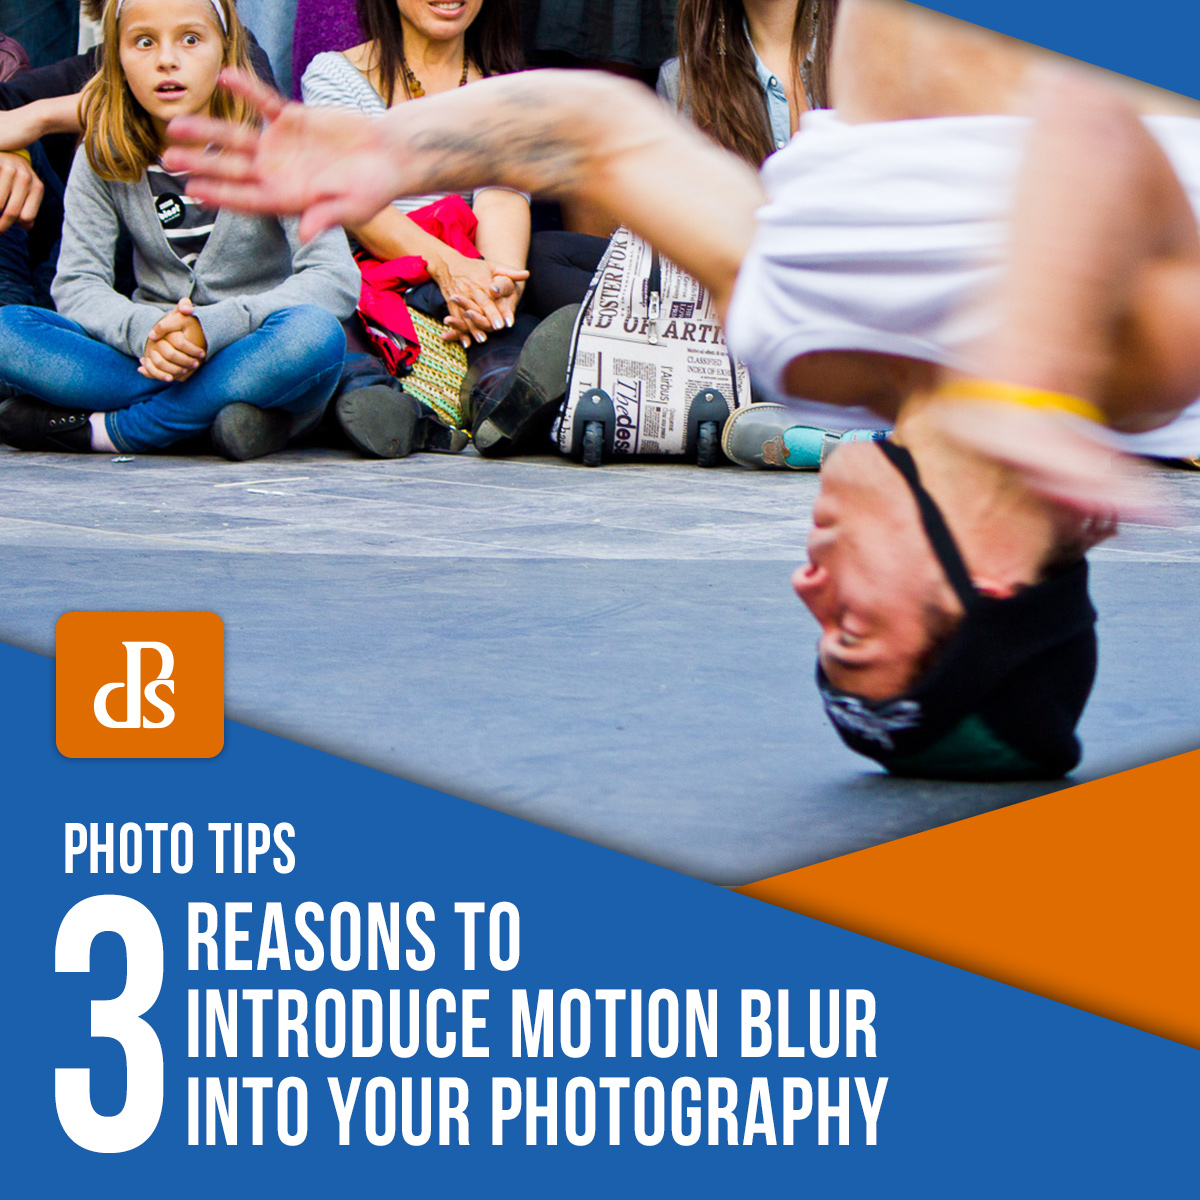 3 Reasons to Introduce Motion Blur Into Your Photography